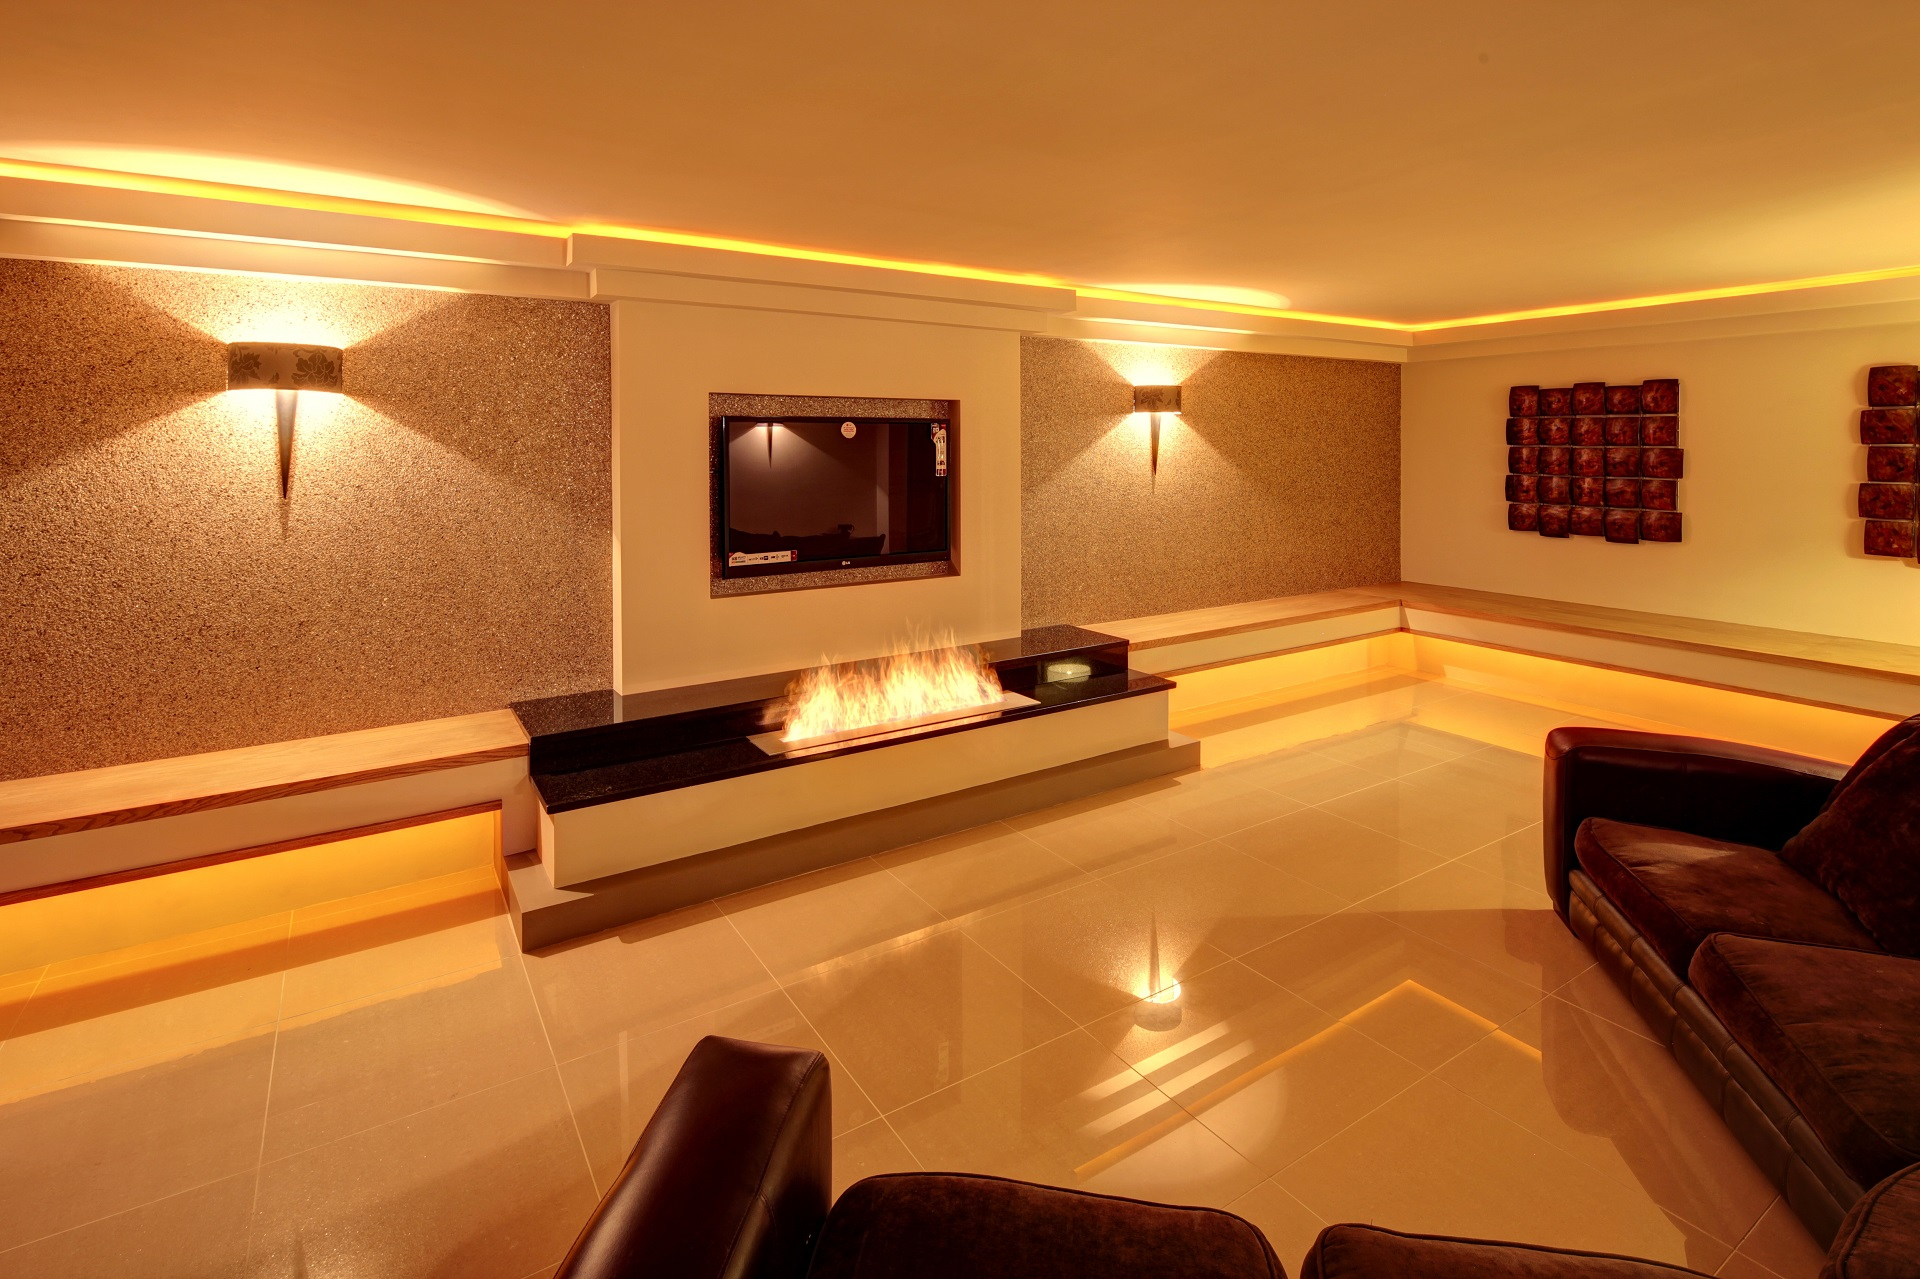 designer living room, shiny tiled floor, gold leaf wallpaper, luxury interior